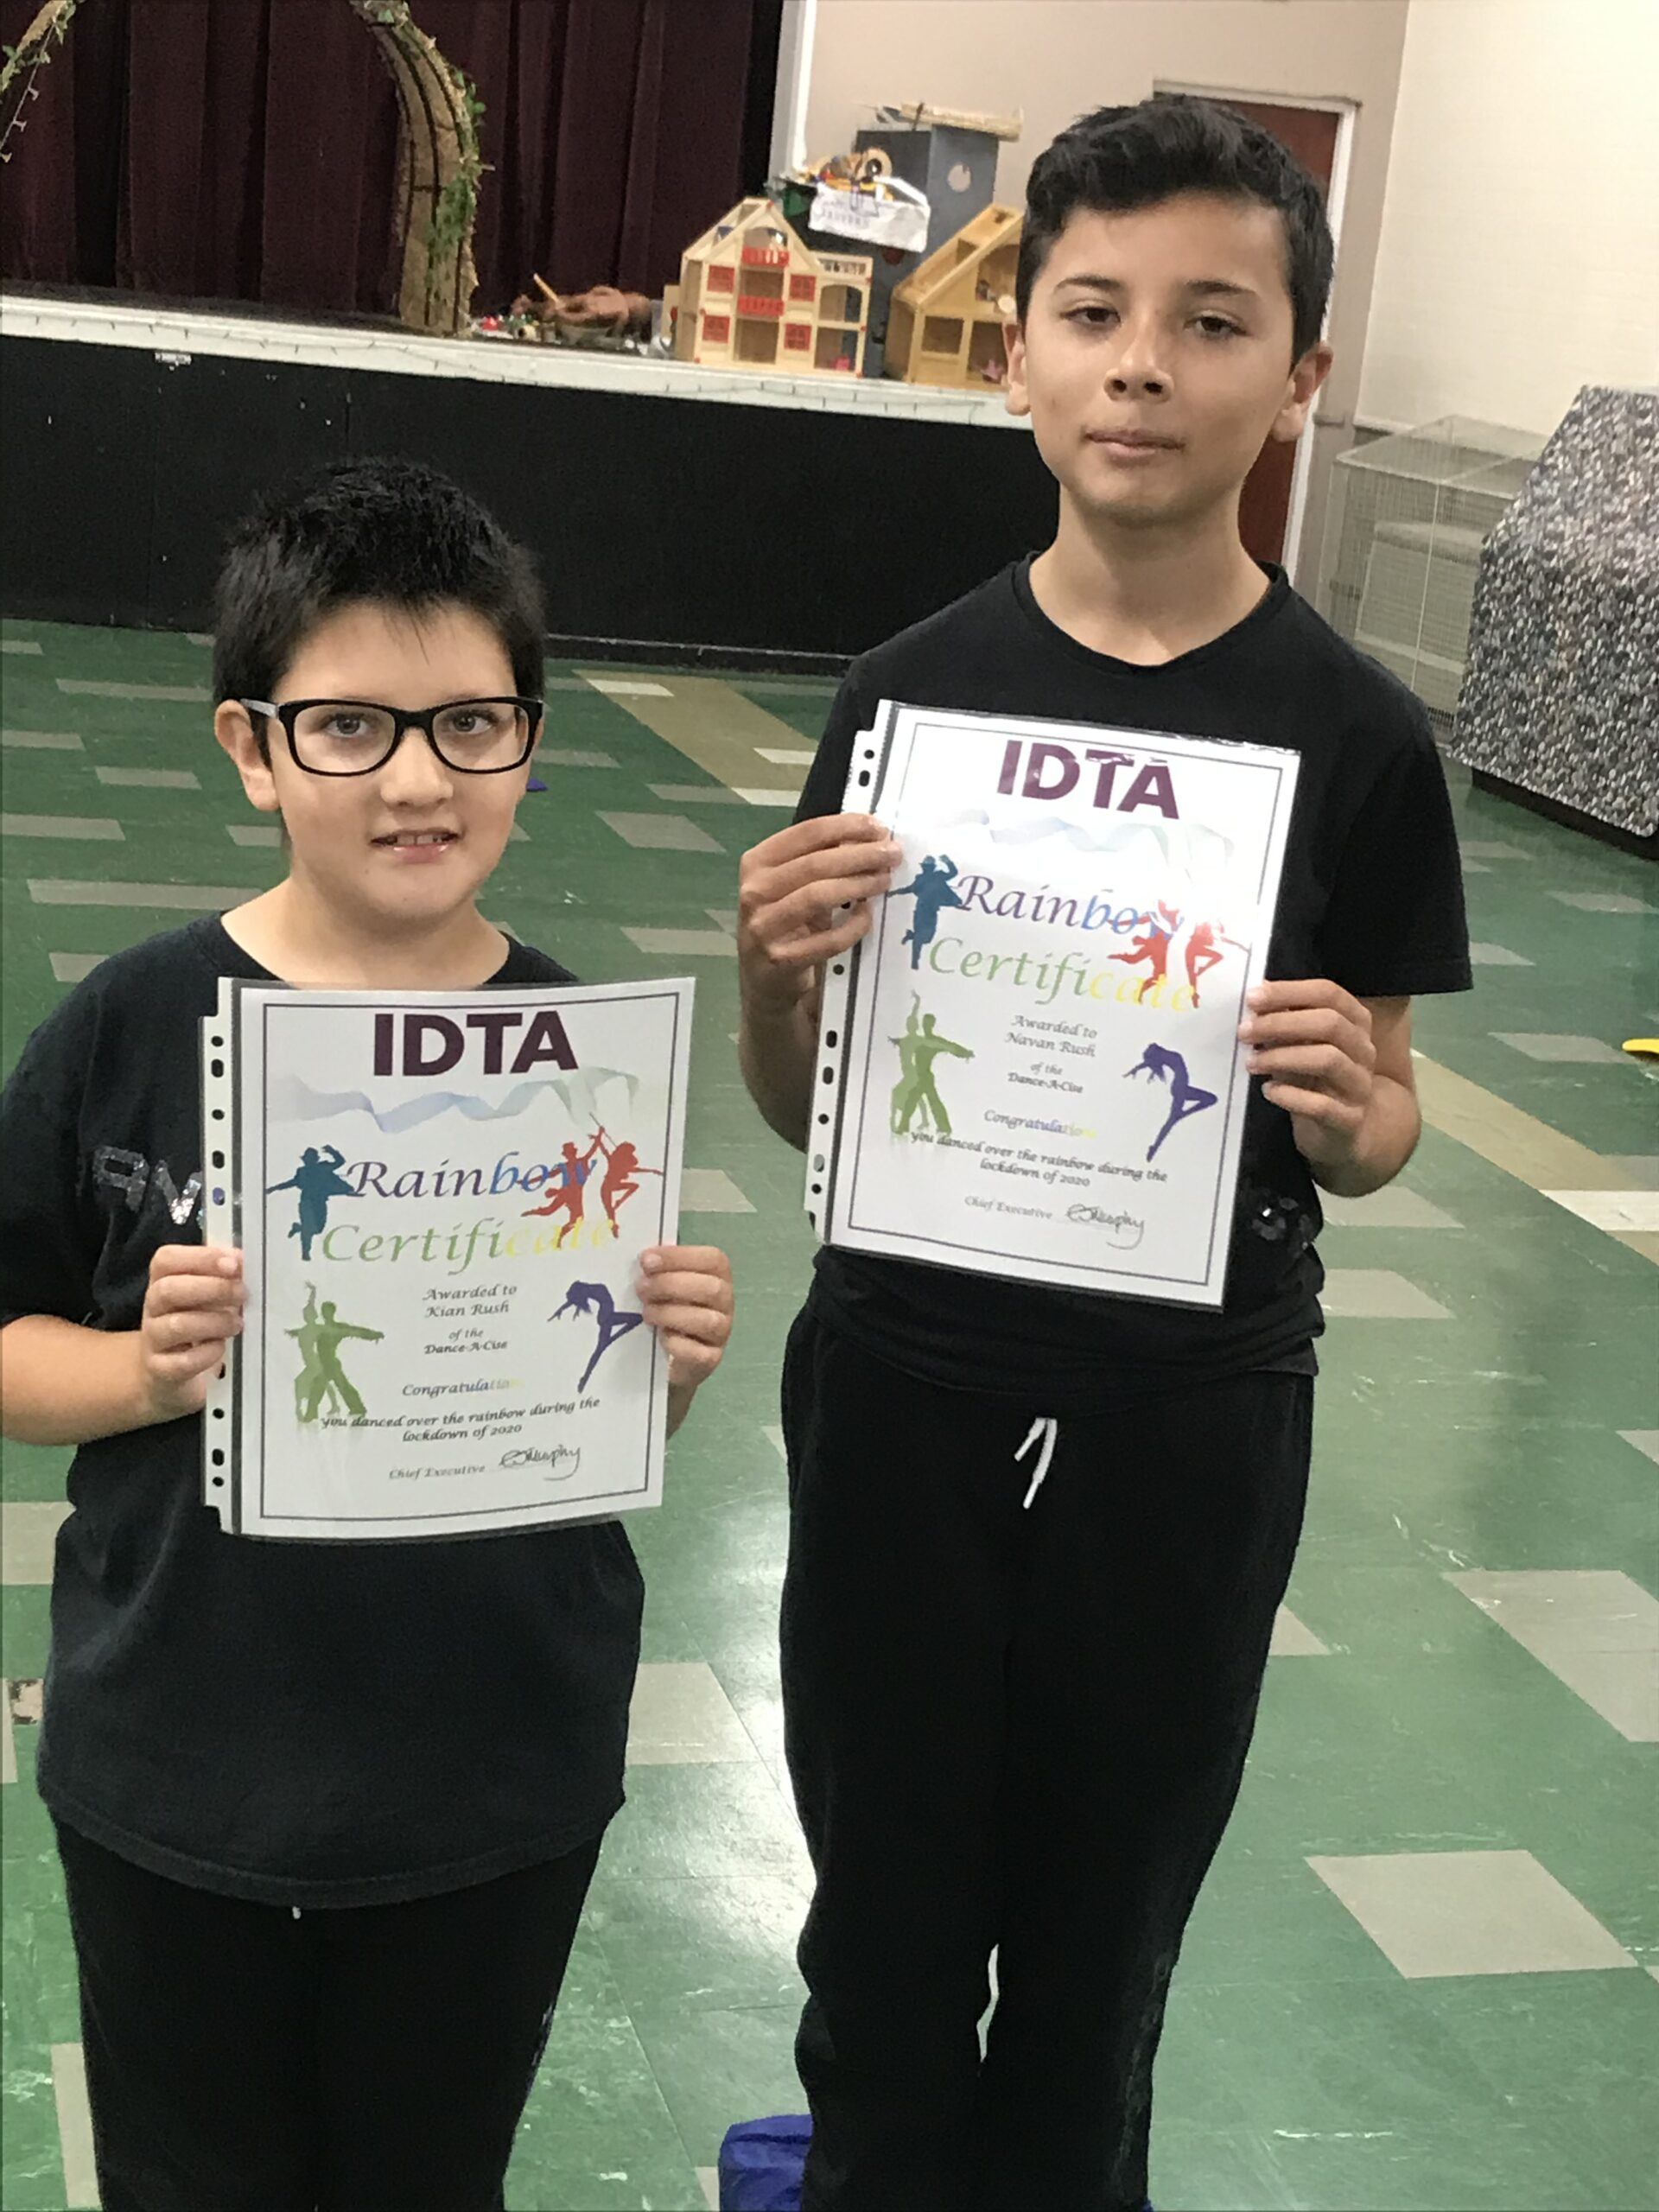 IDTA Rainbow Certificates